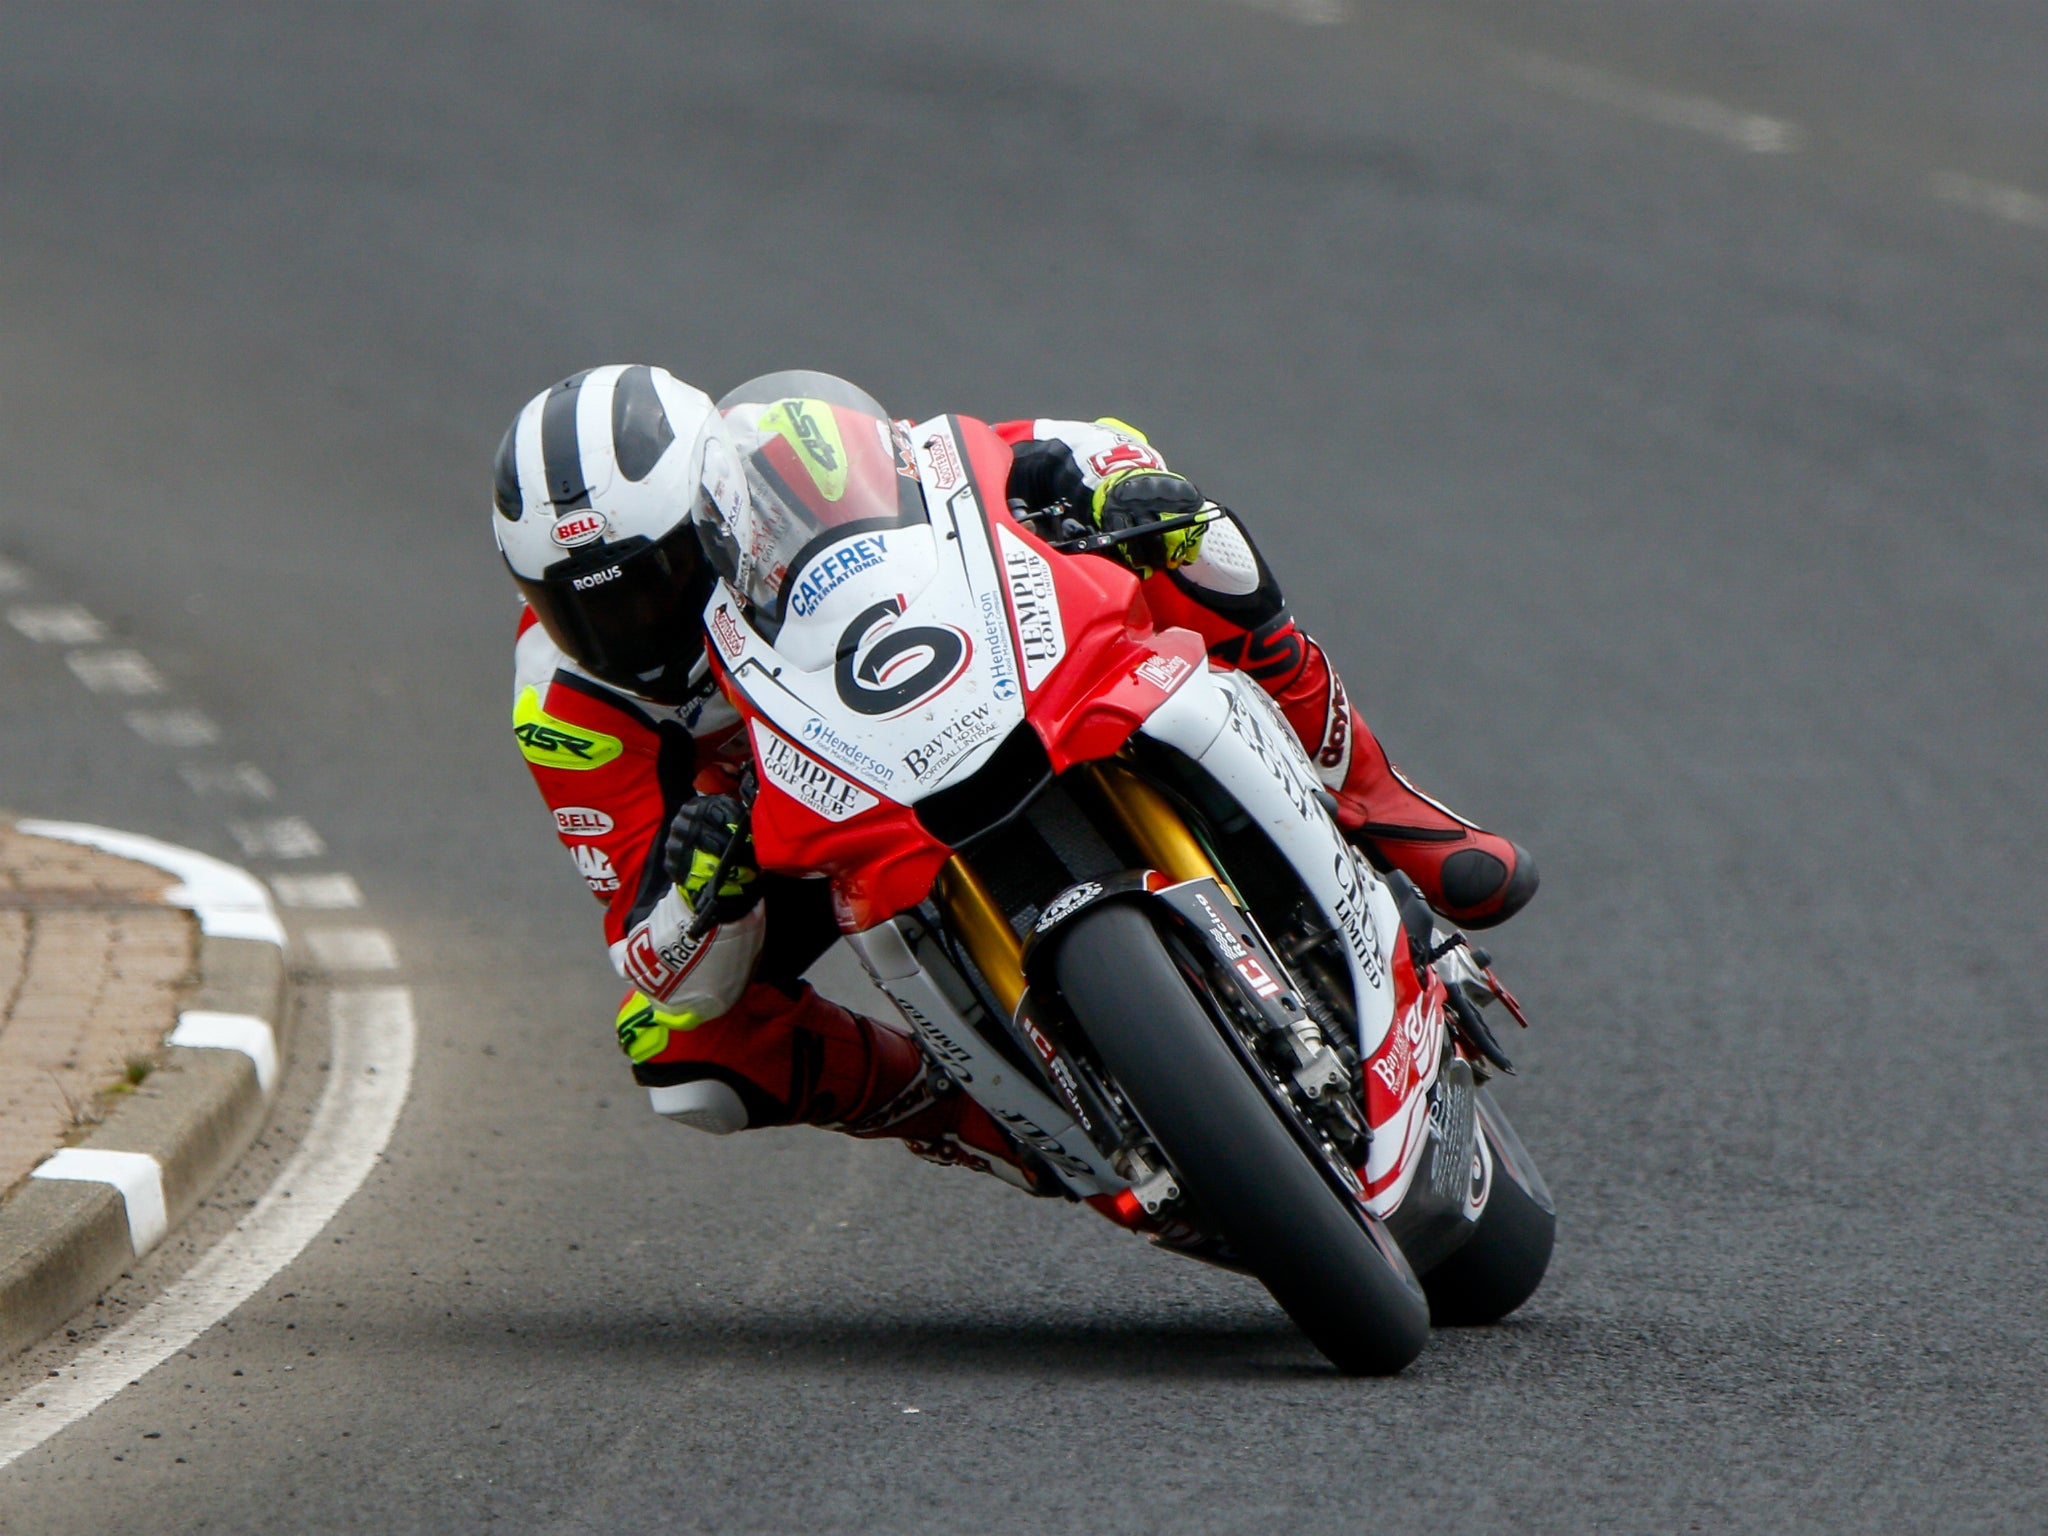 William Dunlop Dead Road Racer Suffers Fatal Crash While Competing At Skerries  Practice In Ireland Aged  The Independent